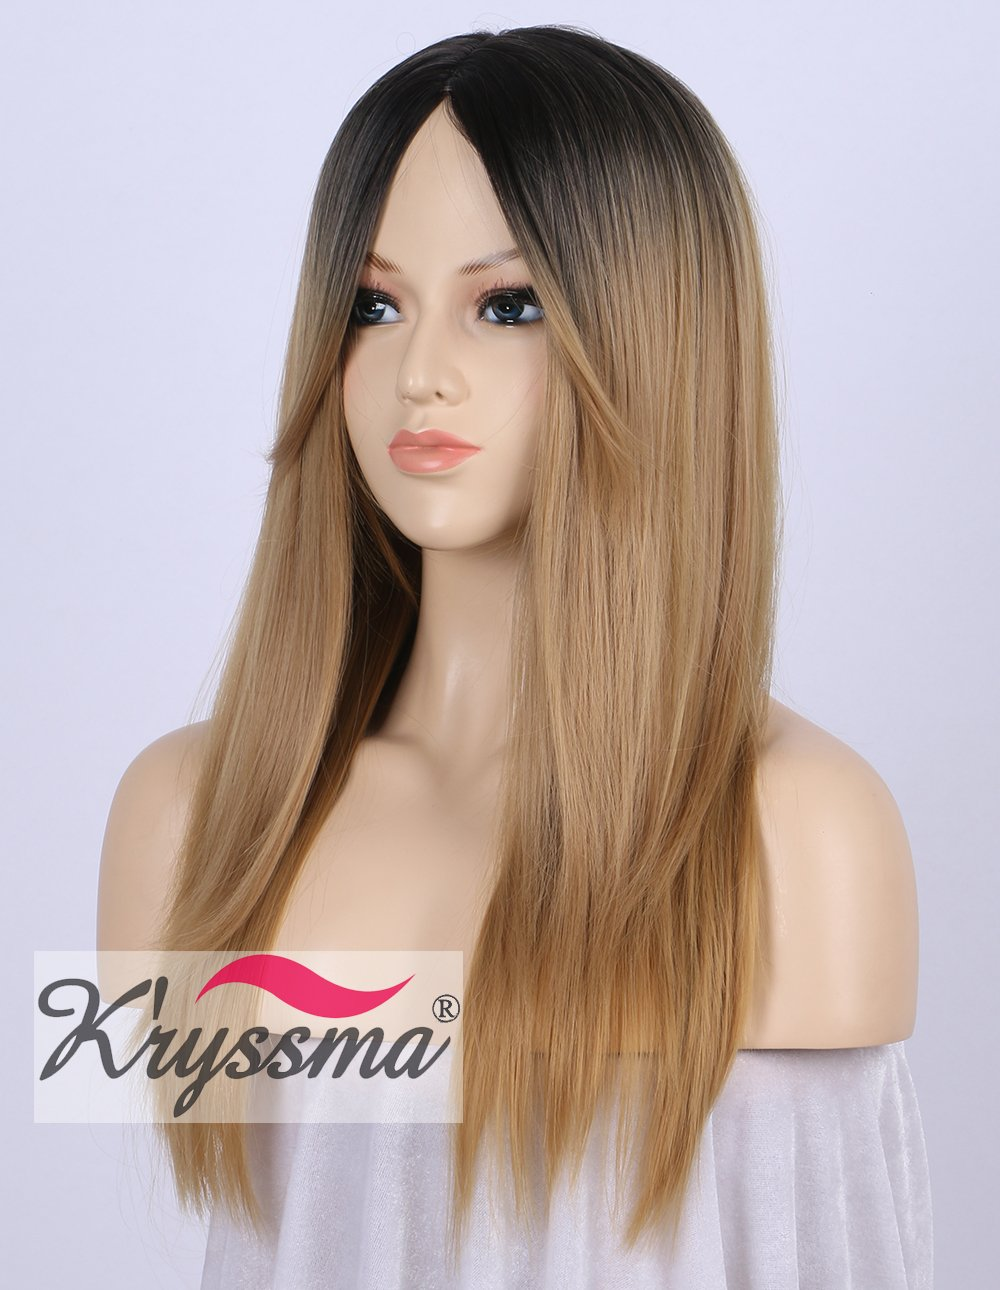 Amazon.com : Kryssma Fashion Ombre Blonde Synthetic Wigs for Women 2 Tone Color Dark Roots Middle Part Long Natural Looking Straight Heat Resistant blonde ...